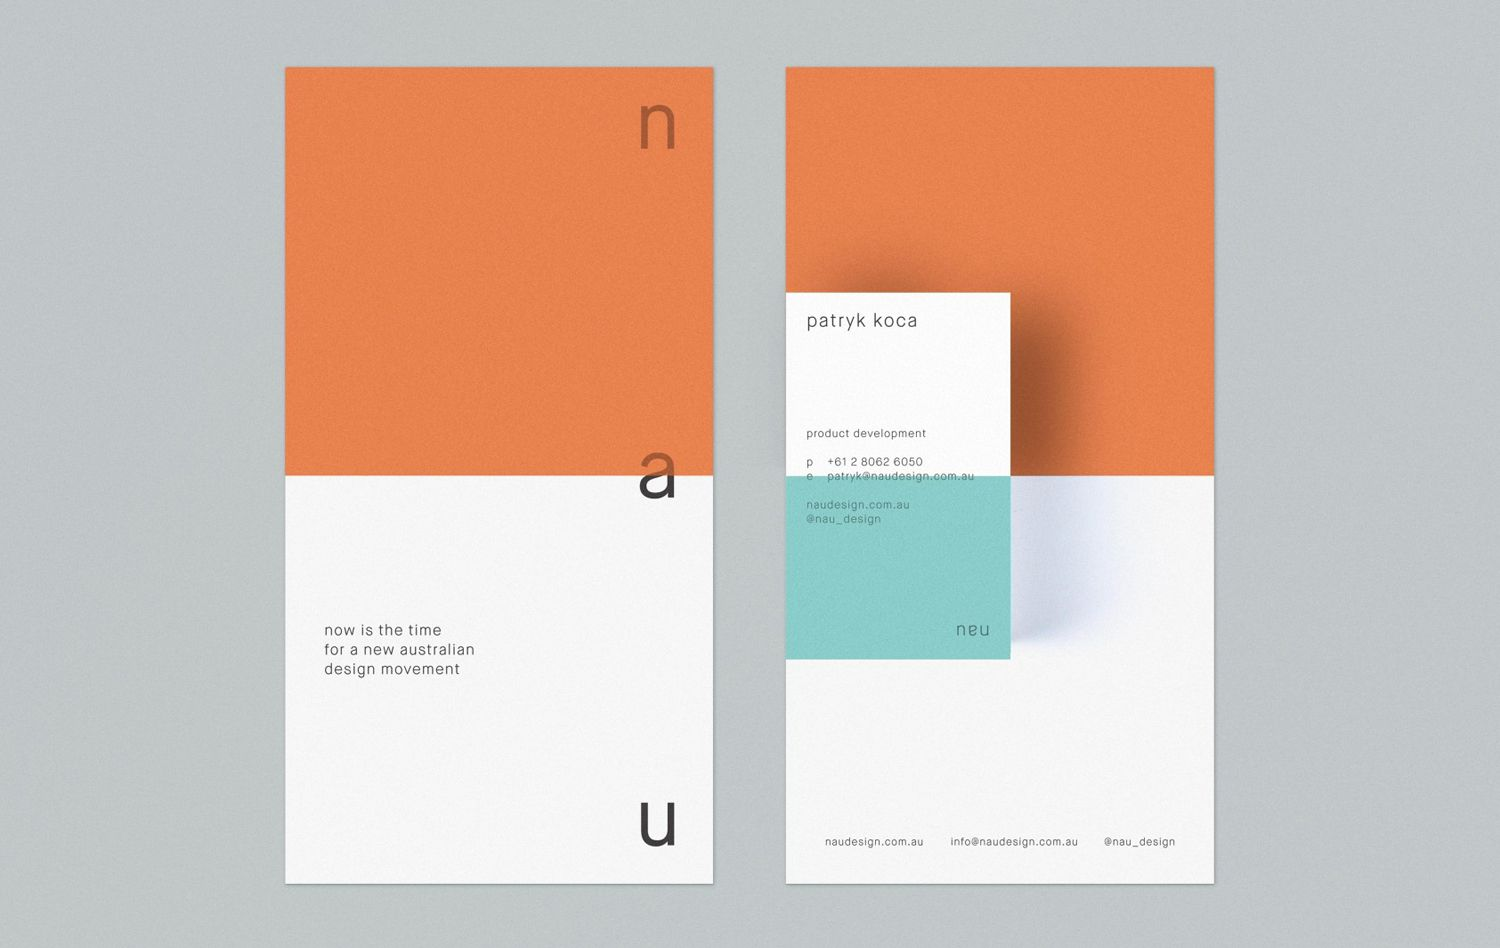 New logo branding for nau by design by toko bpo business logo business cards and stationery by design by toko for cults new contemporary furniture range reheart Choice Image